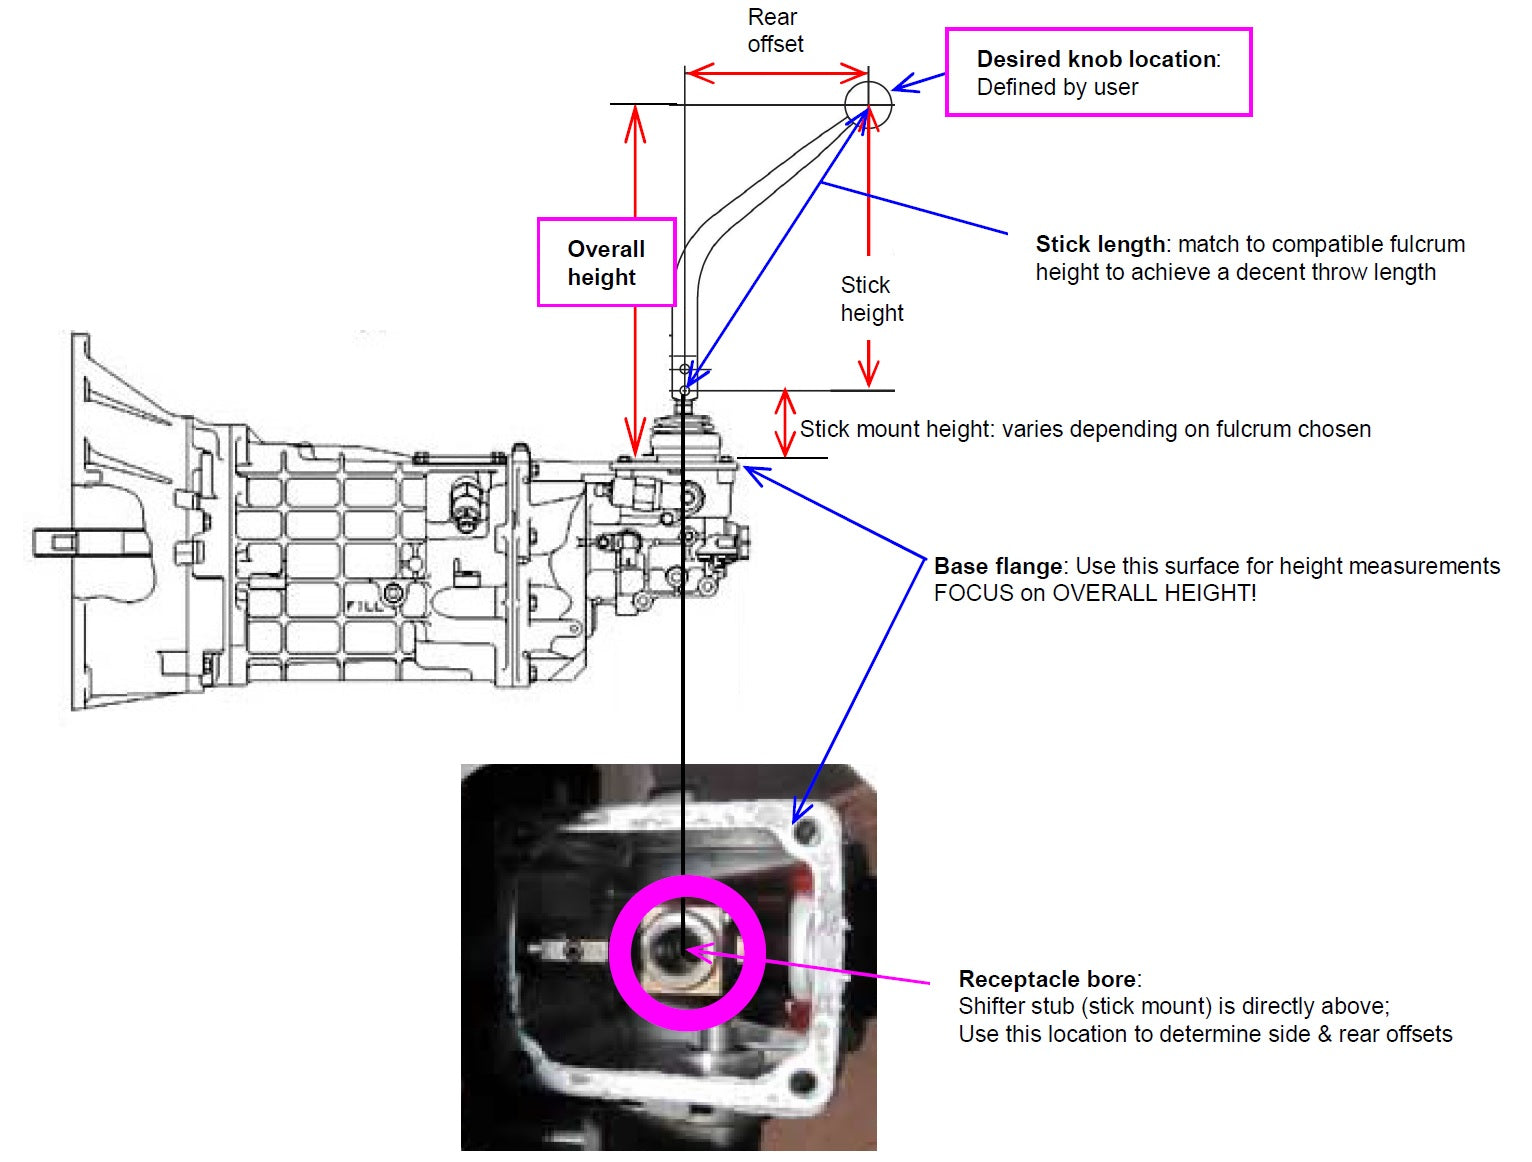 see this diagram for clarification